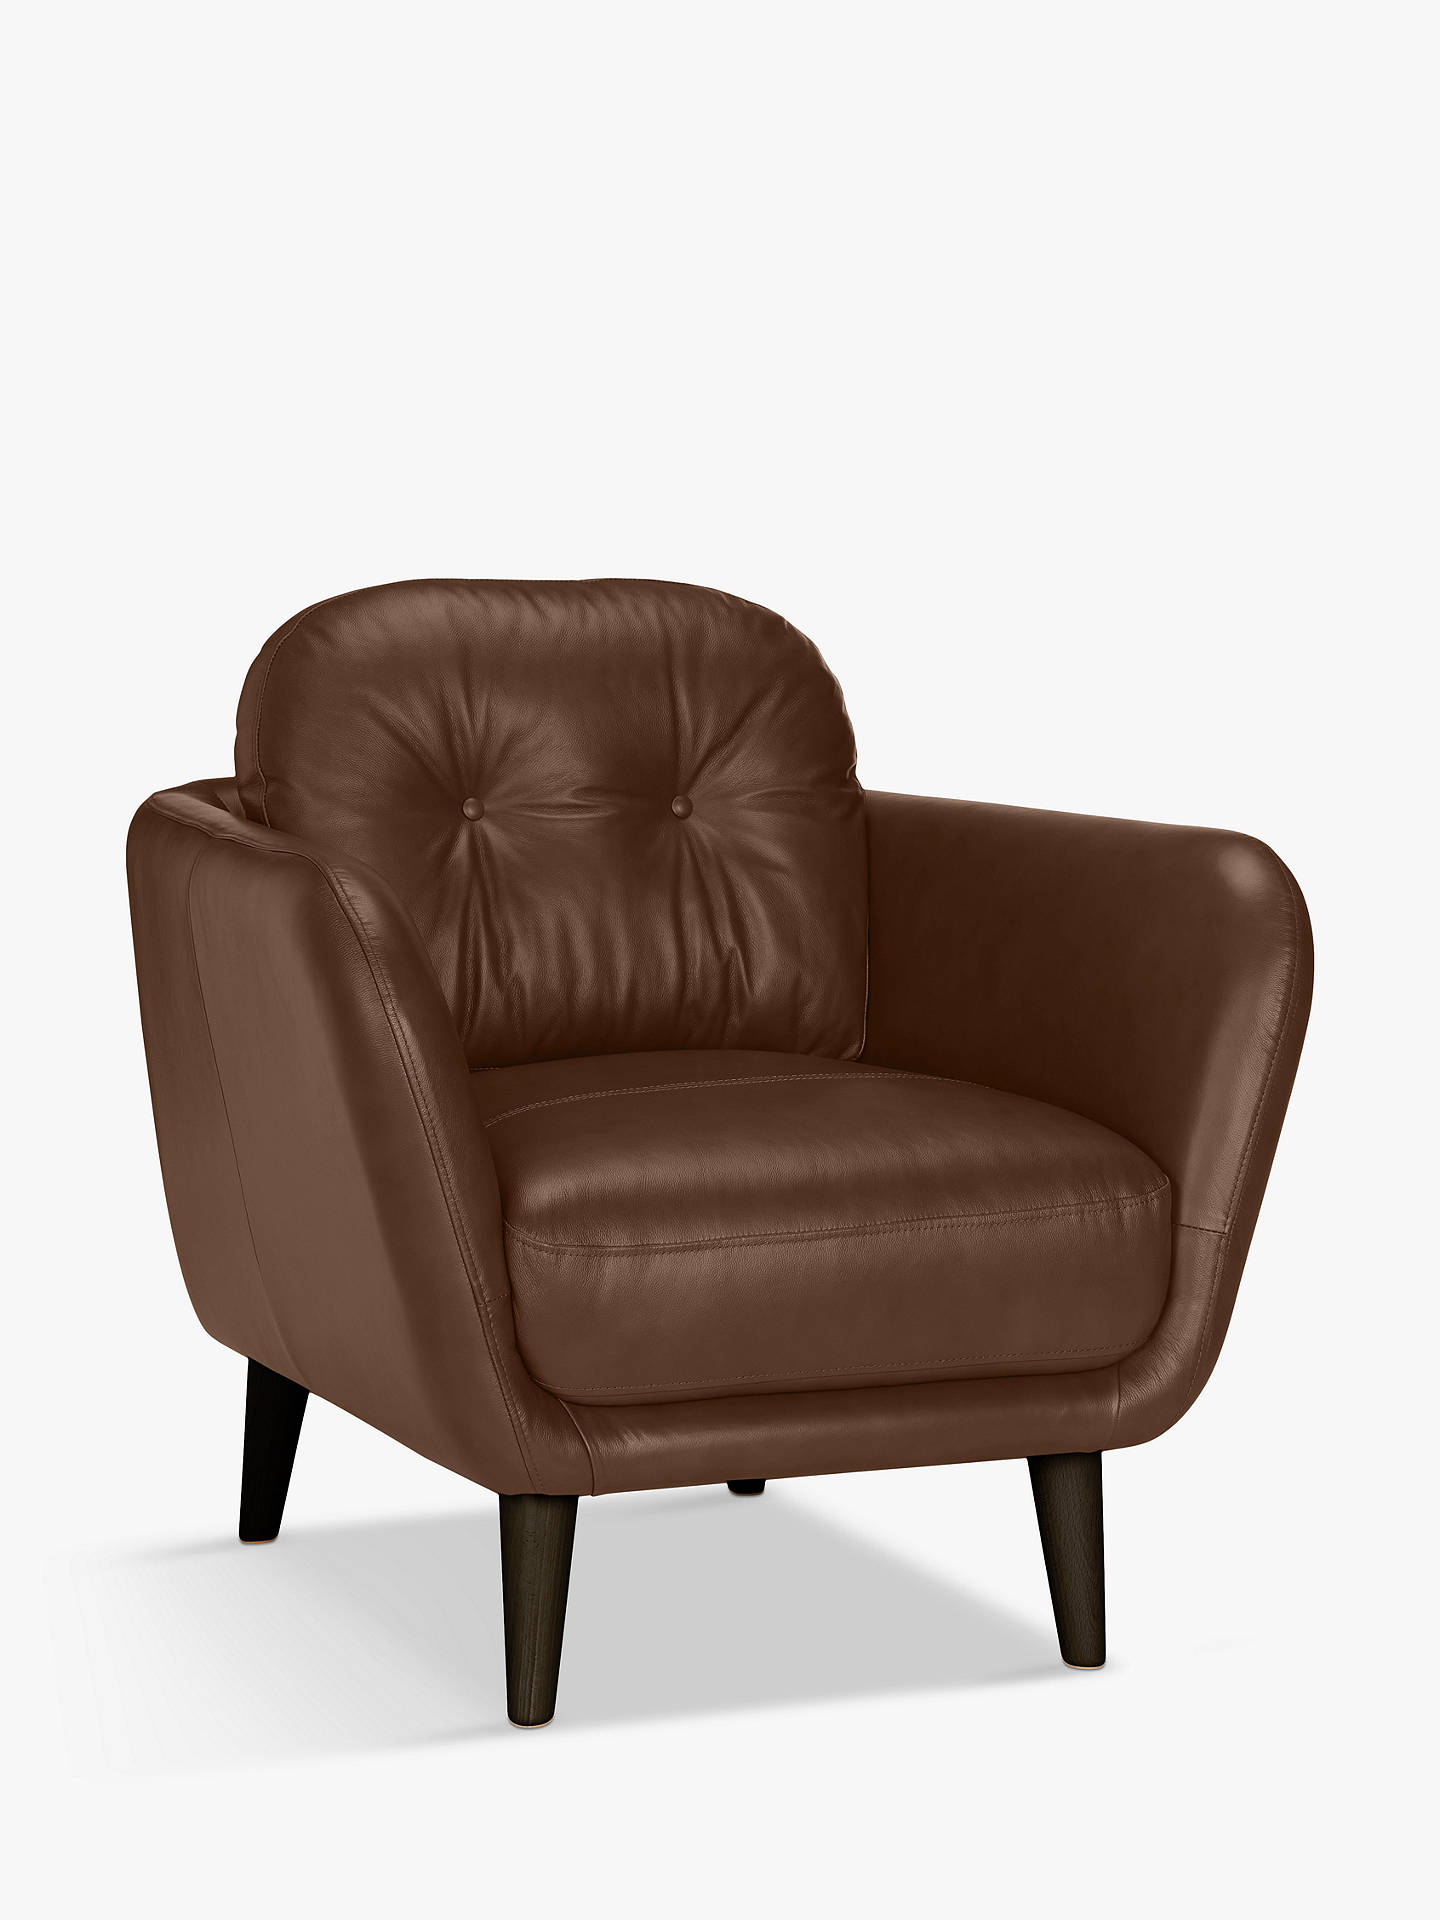 Buy House by John Lewis Arlo Leather Armchair, Dark Leg, Contempo Castanga Online at johnlewis.com